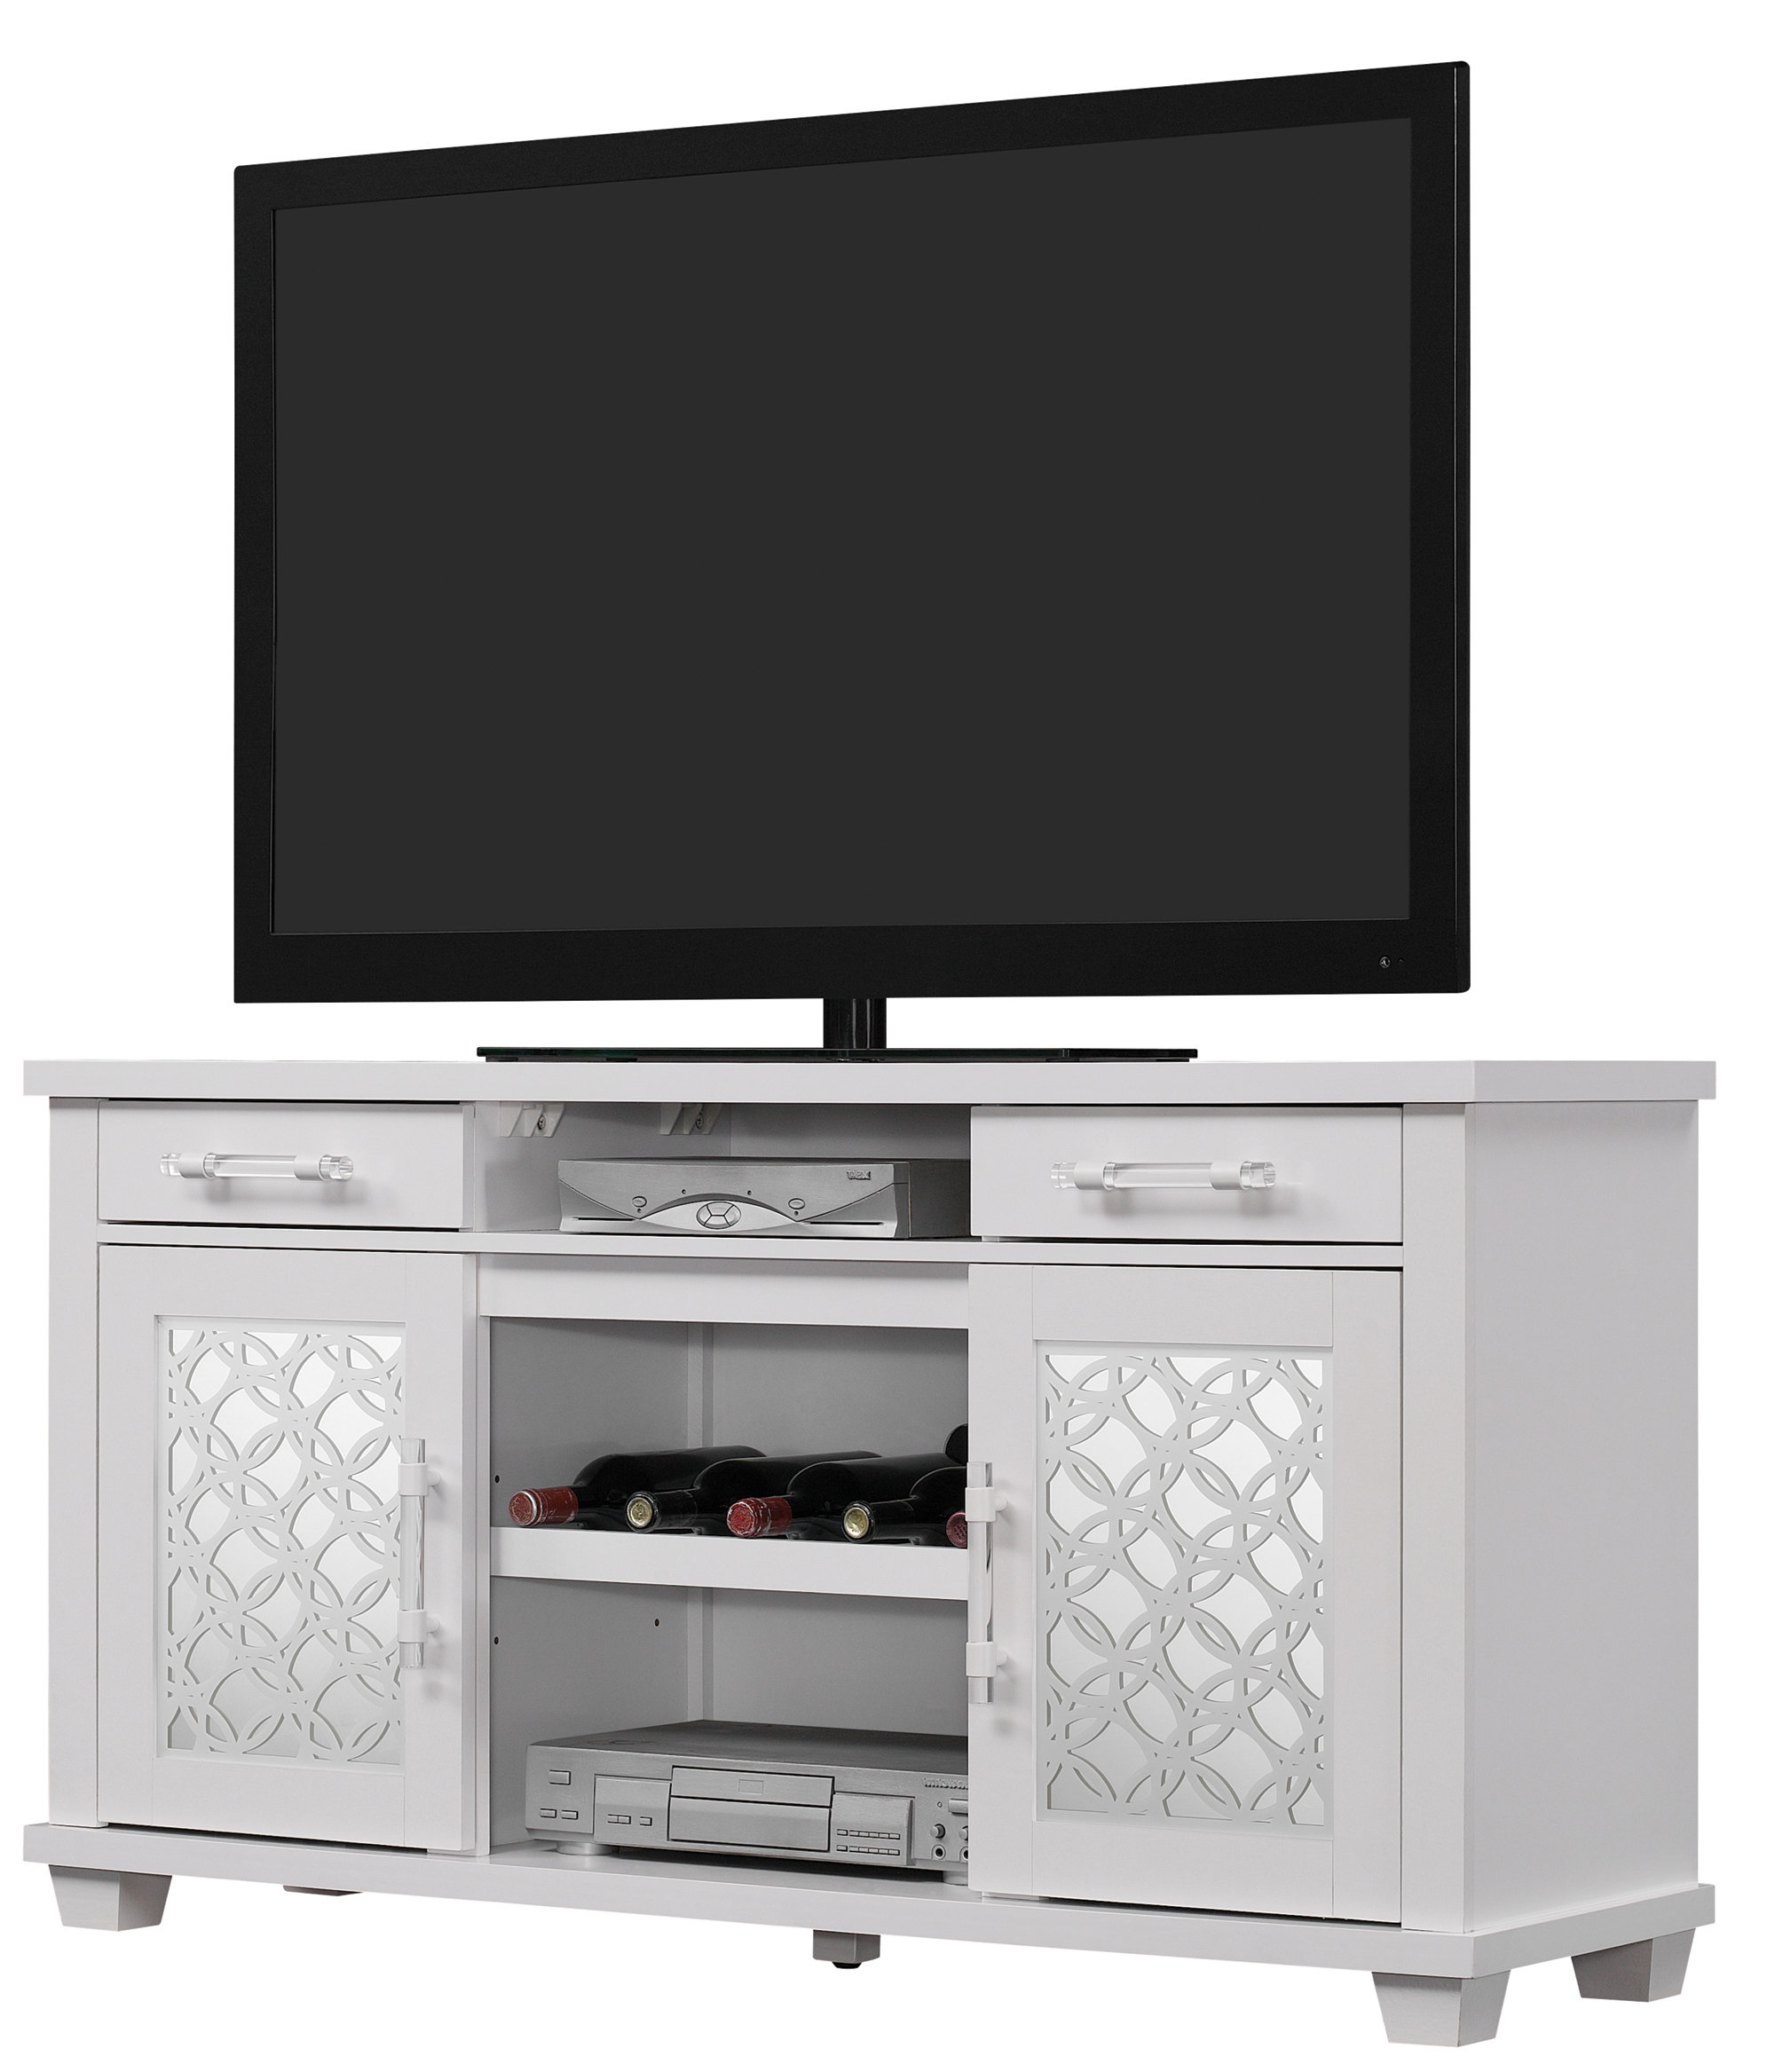 Ophelia & Co. Brittany Tv Stand & Reviews | Wayfair (View 4 of 20)